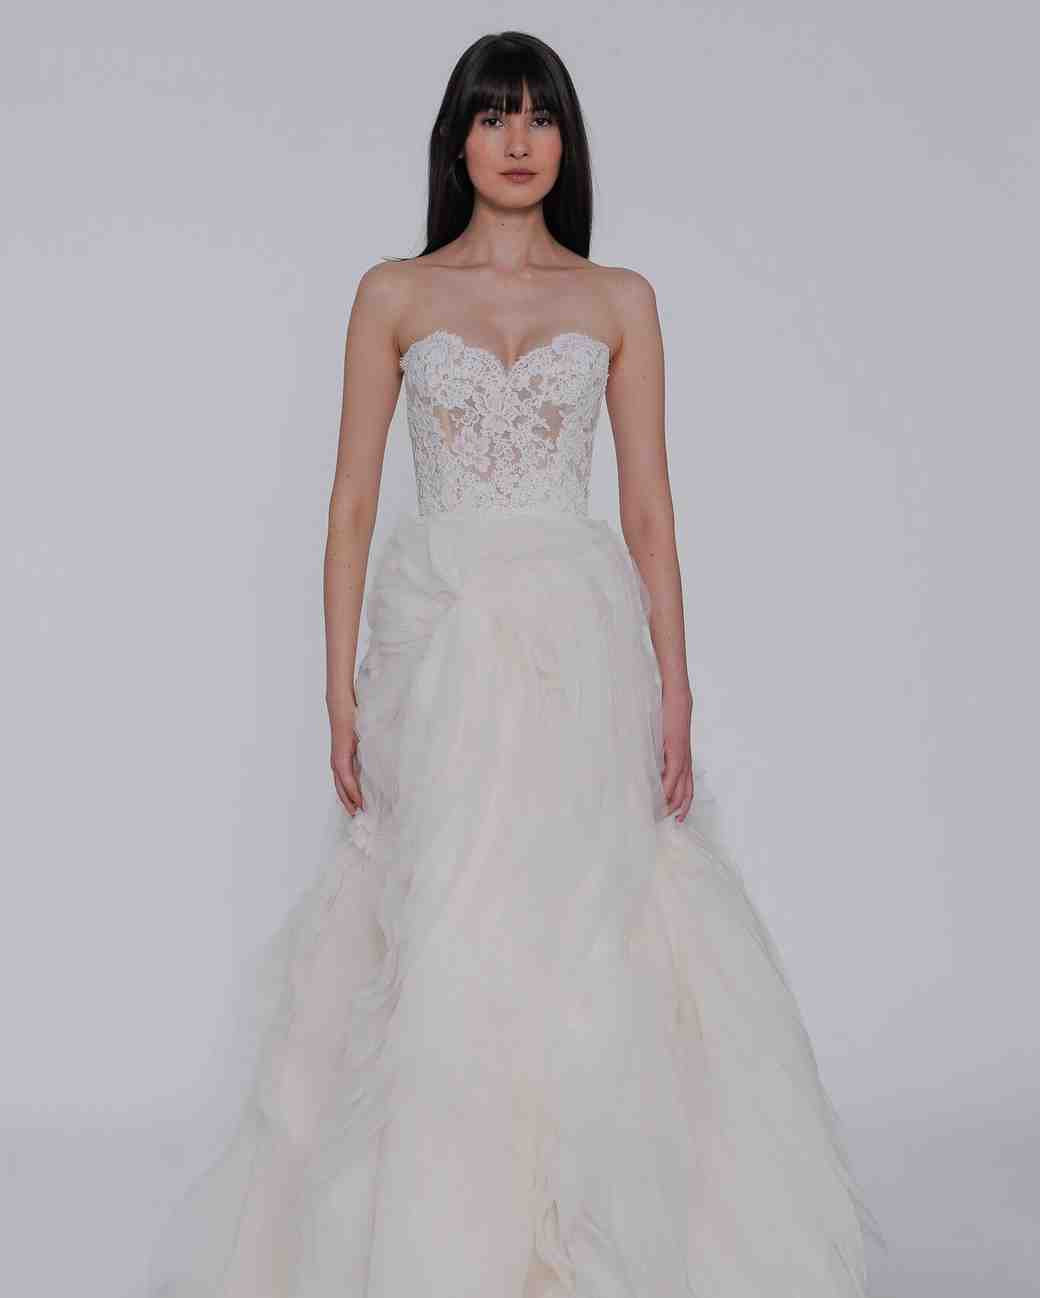 Sophia Tolli Bridal Spring 2019: Lazaro Spring 2019 Wedding Dress Collection